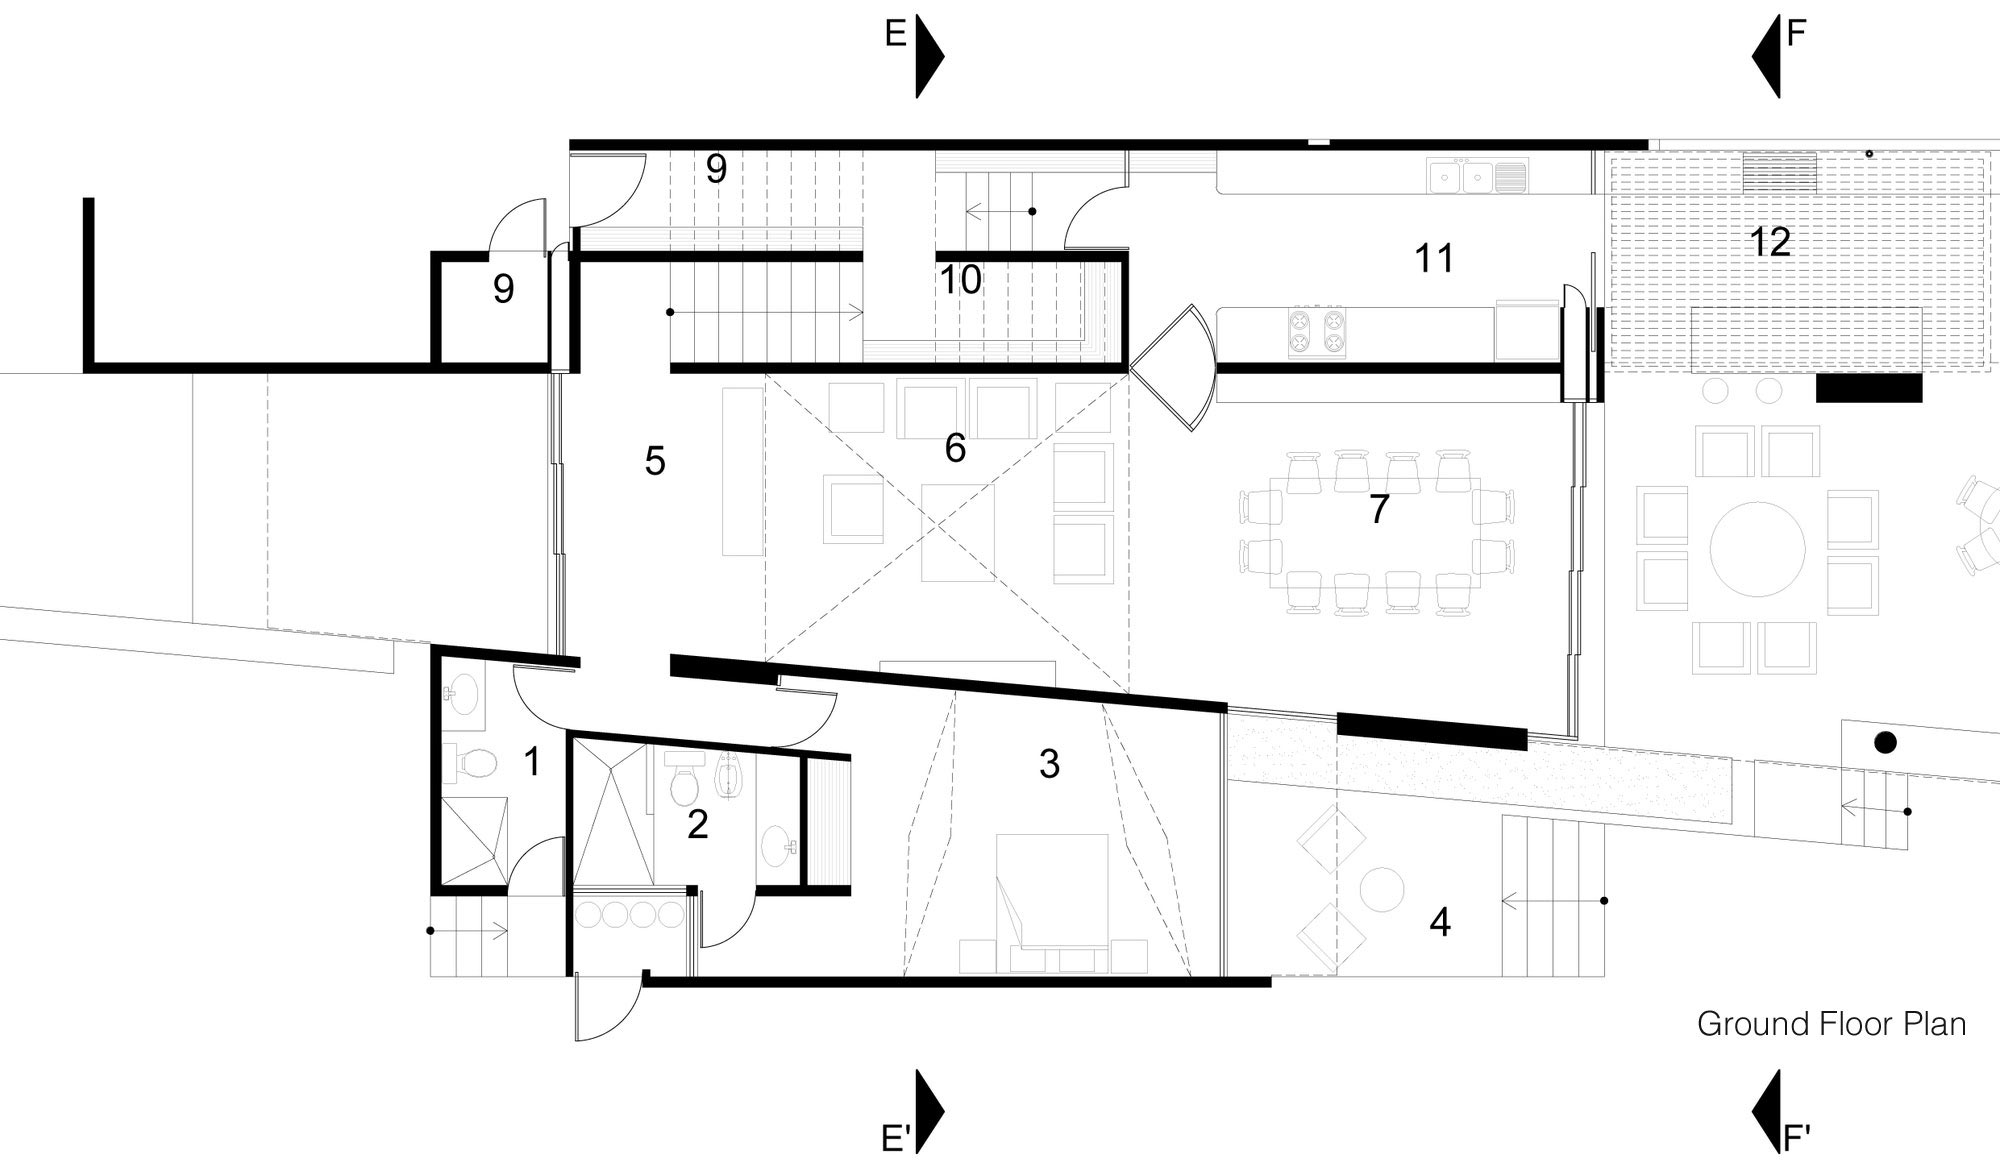 Ground Floor Plan, Tuunich Kanab in San Bruno, Mexico by Seijo Peon Arquitectos